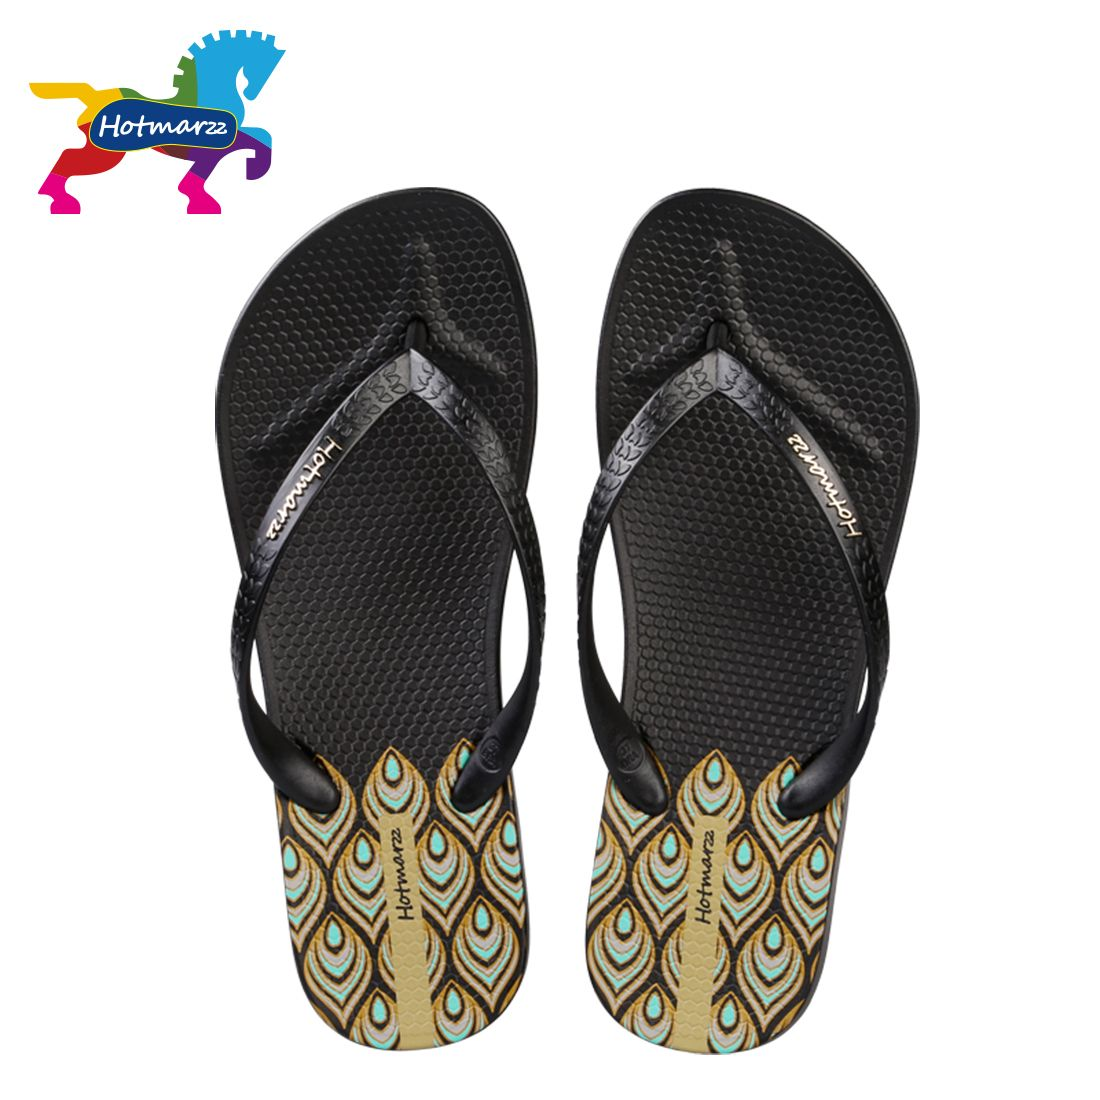 Unisex Non-slip Flip Flops Elephant Head With Flowers Cool Beach Slippers Sandal